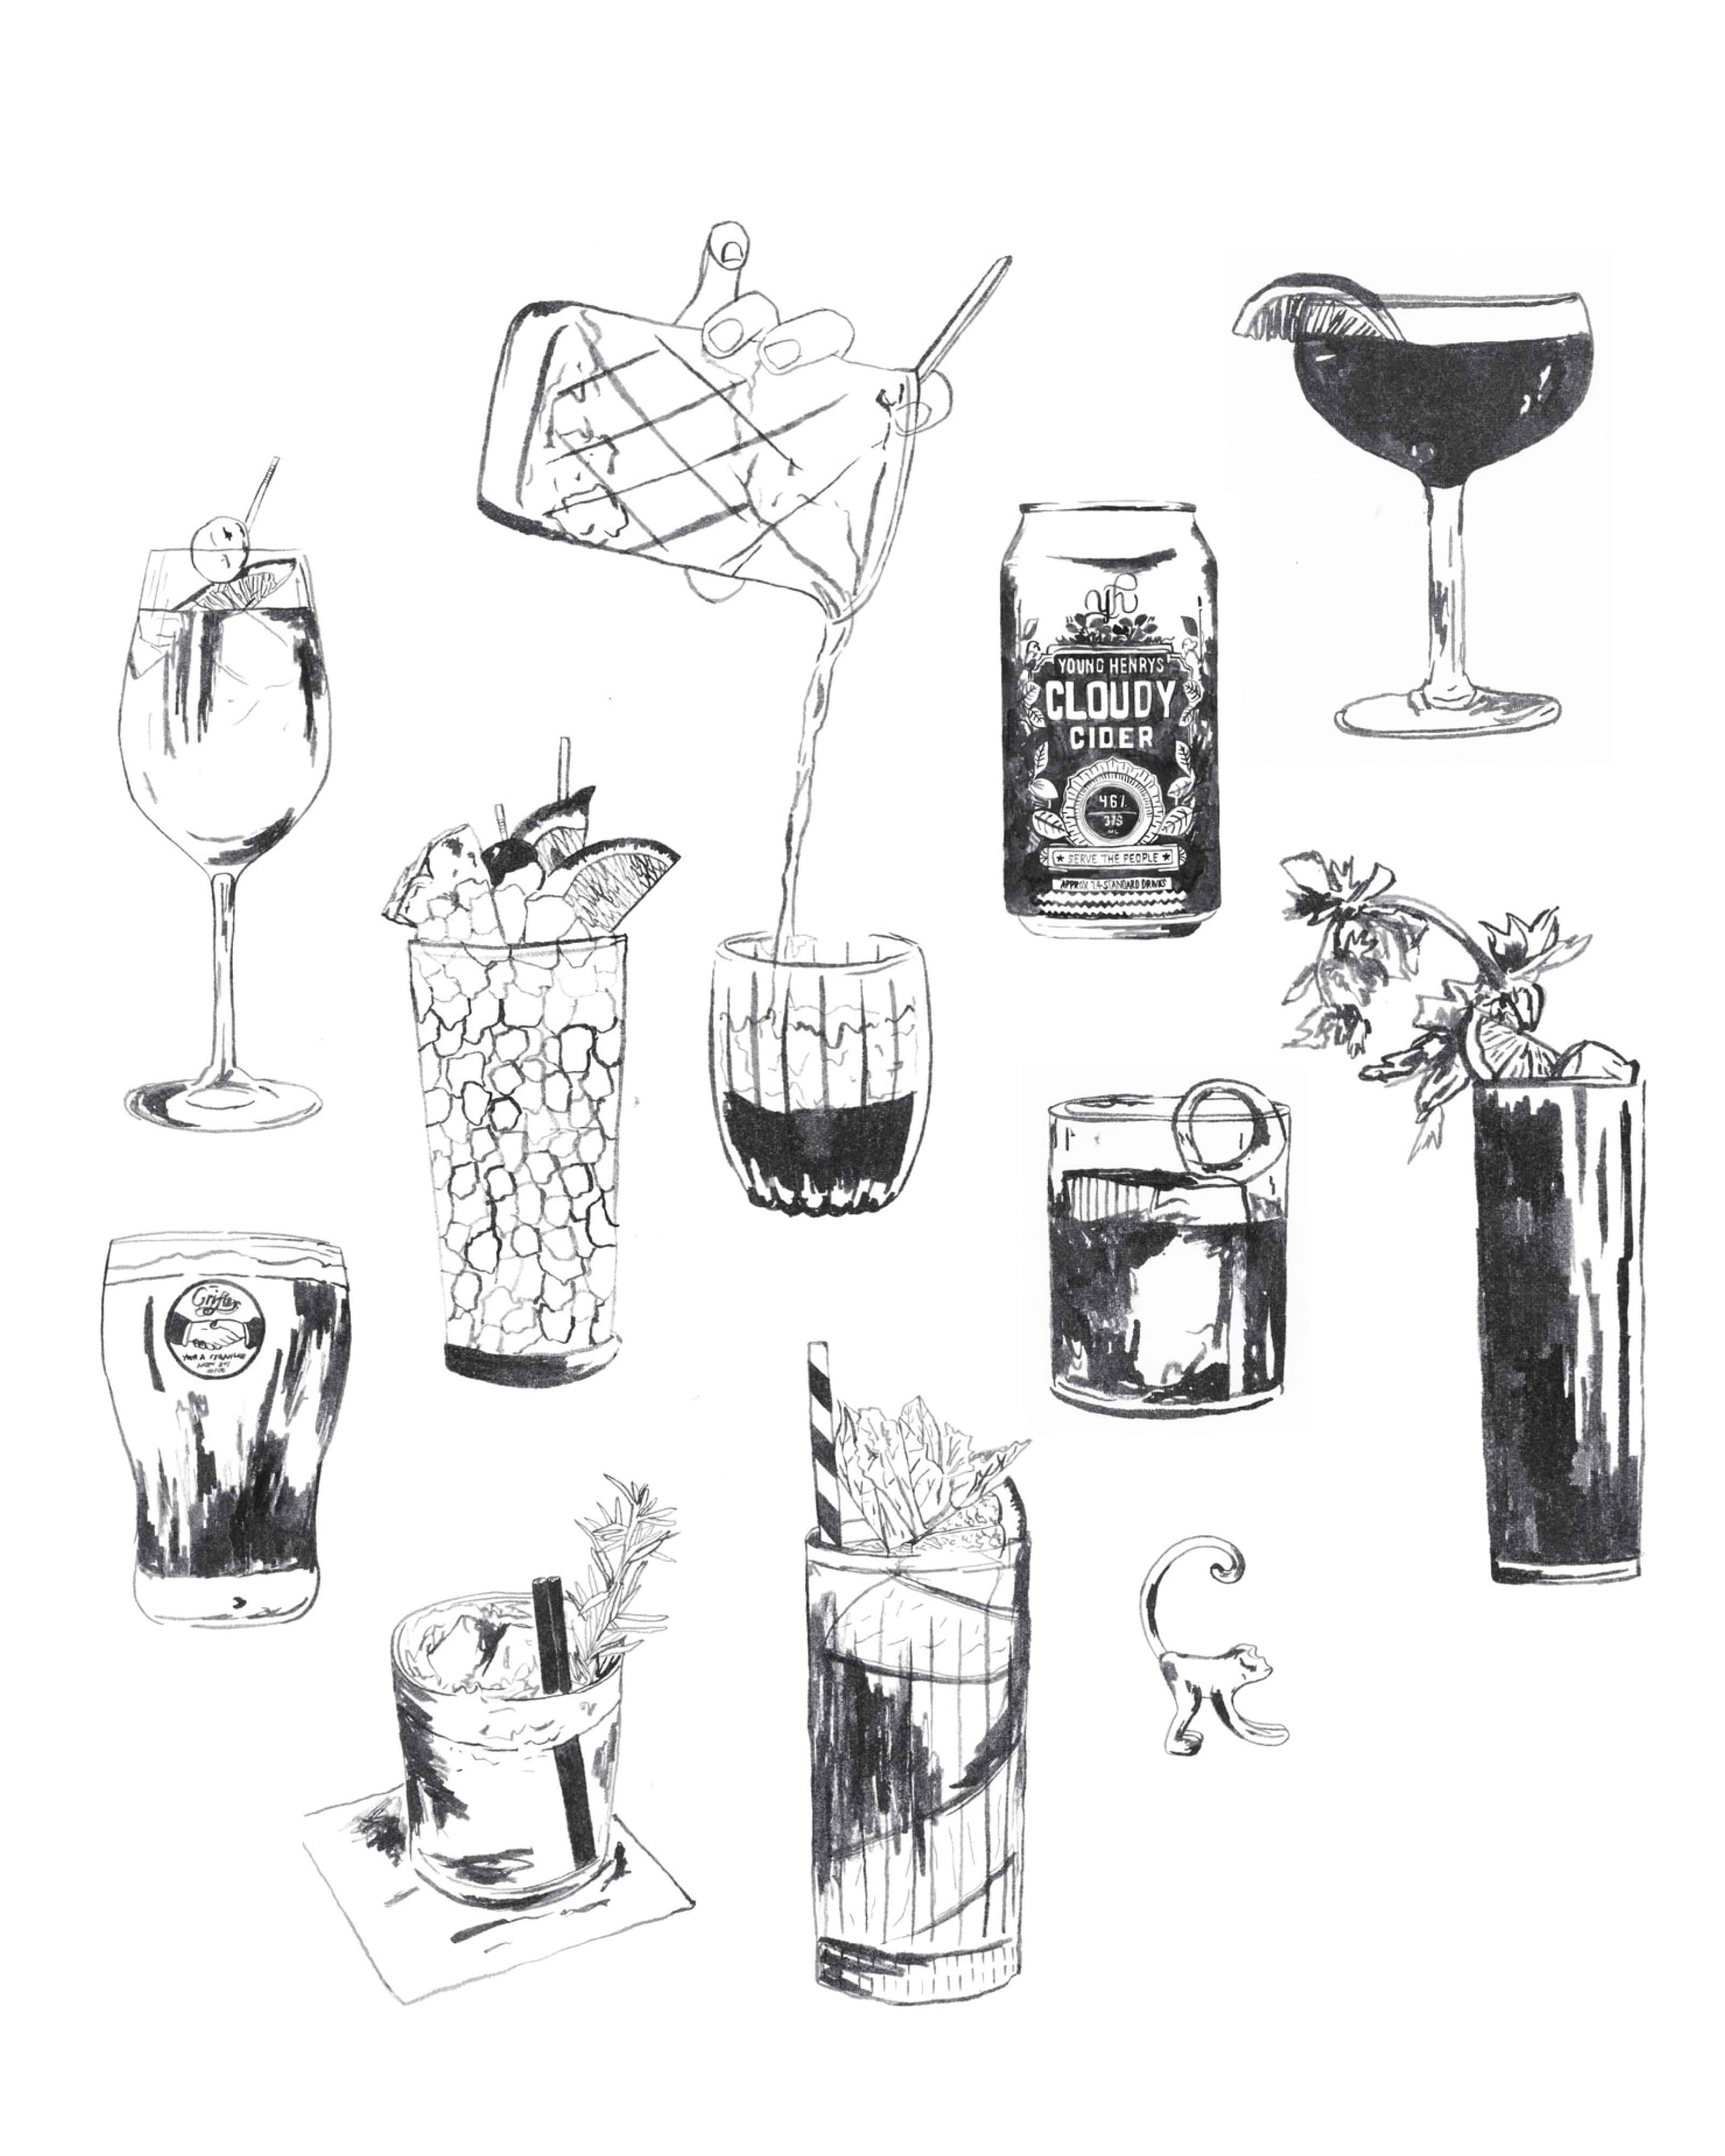 Some Commercial Illustrations